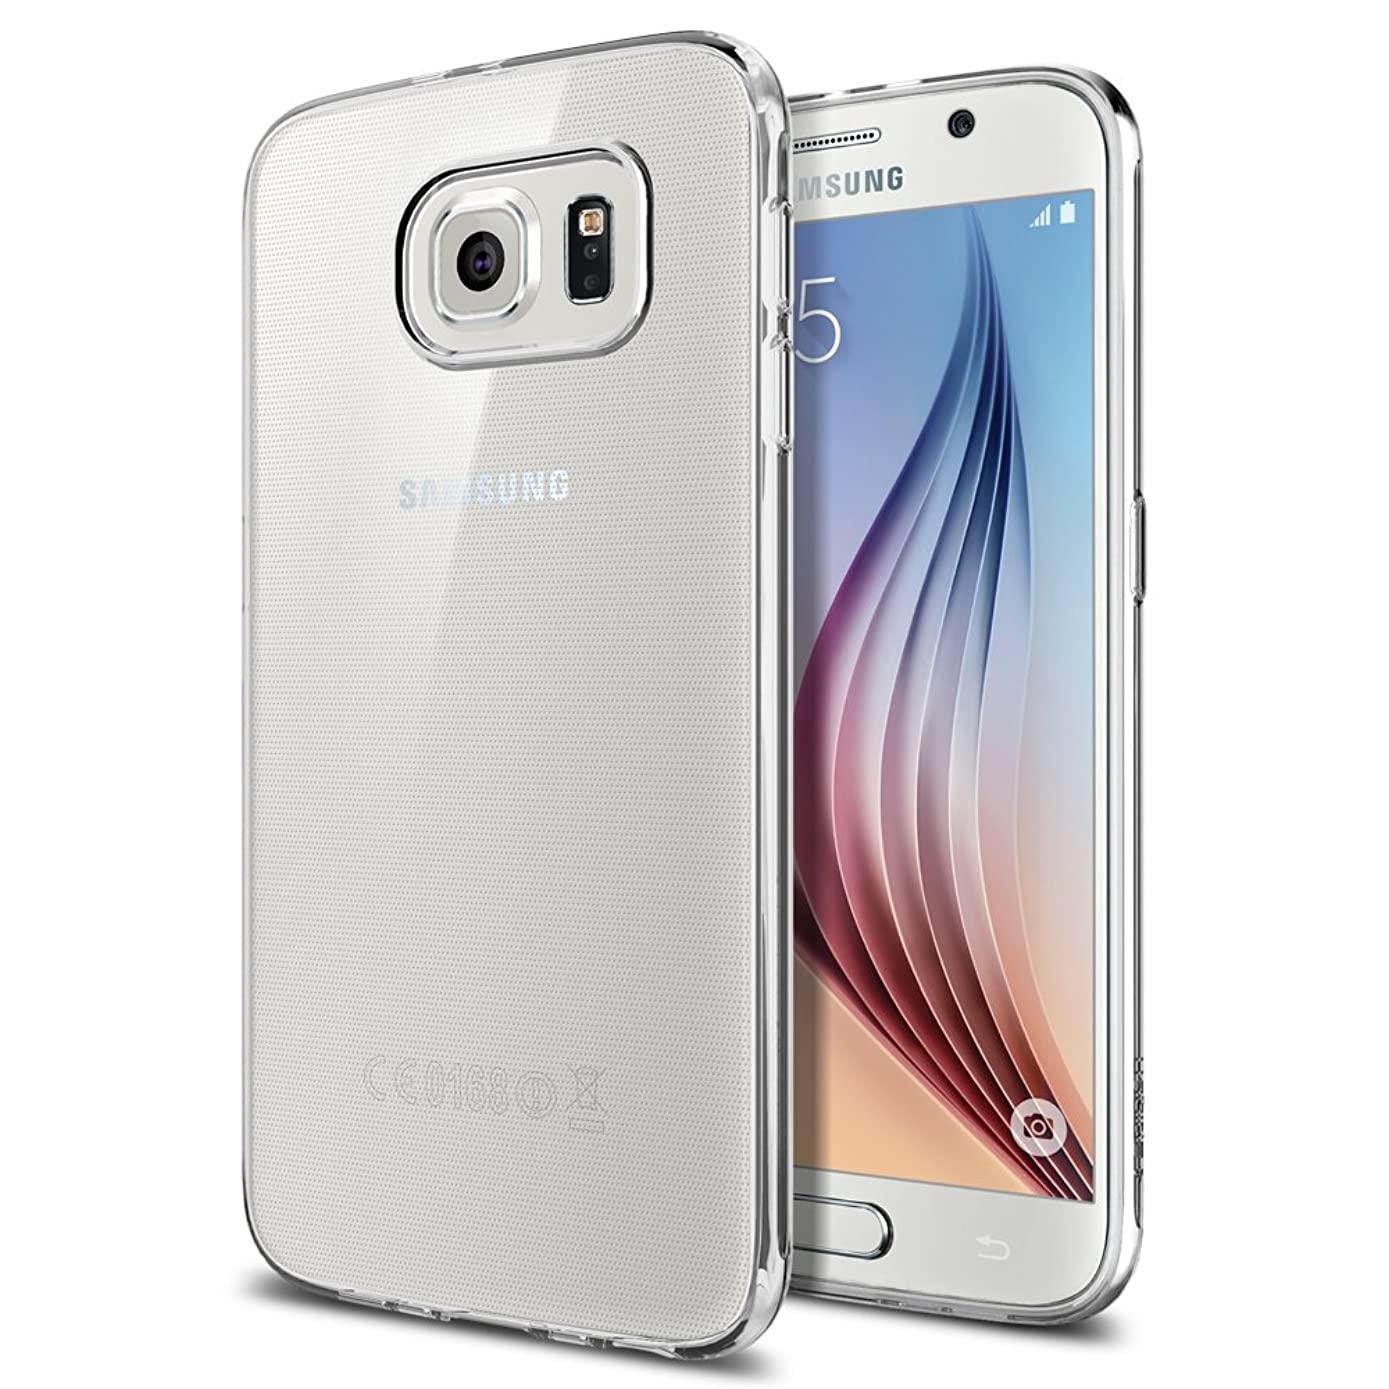 Spigen Liquid Crystal Galaxy S6 Case with Semi-Transparent Lightweight Material for Galaxy S6 2015 - Crystal Clear